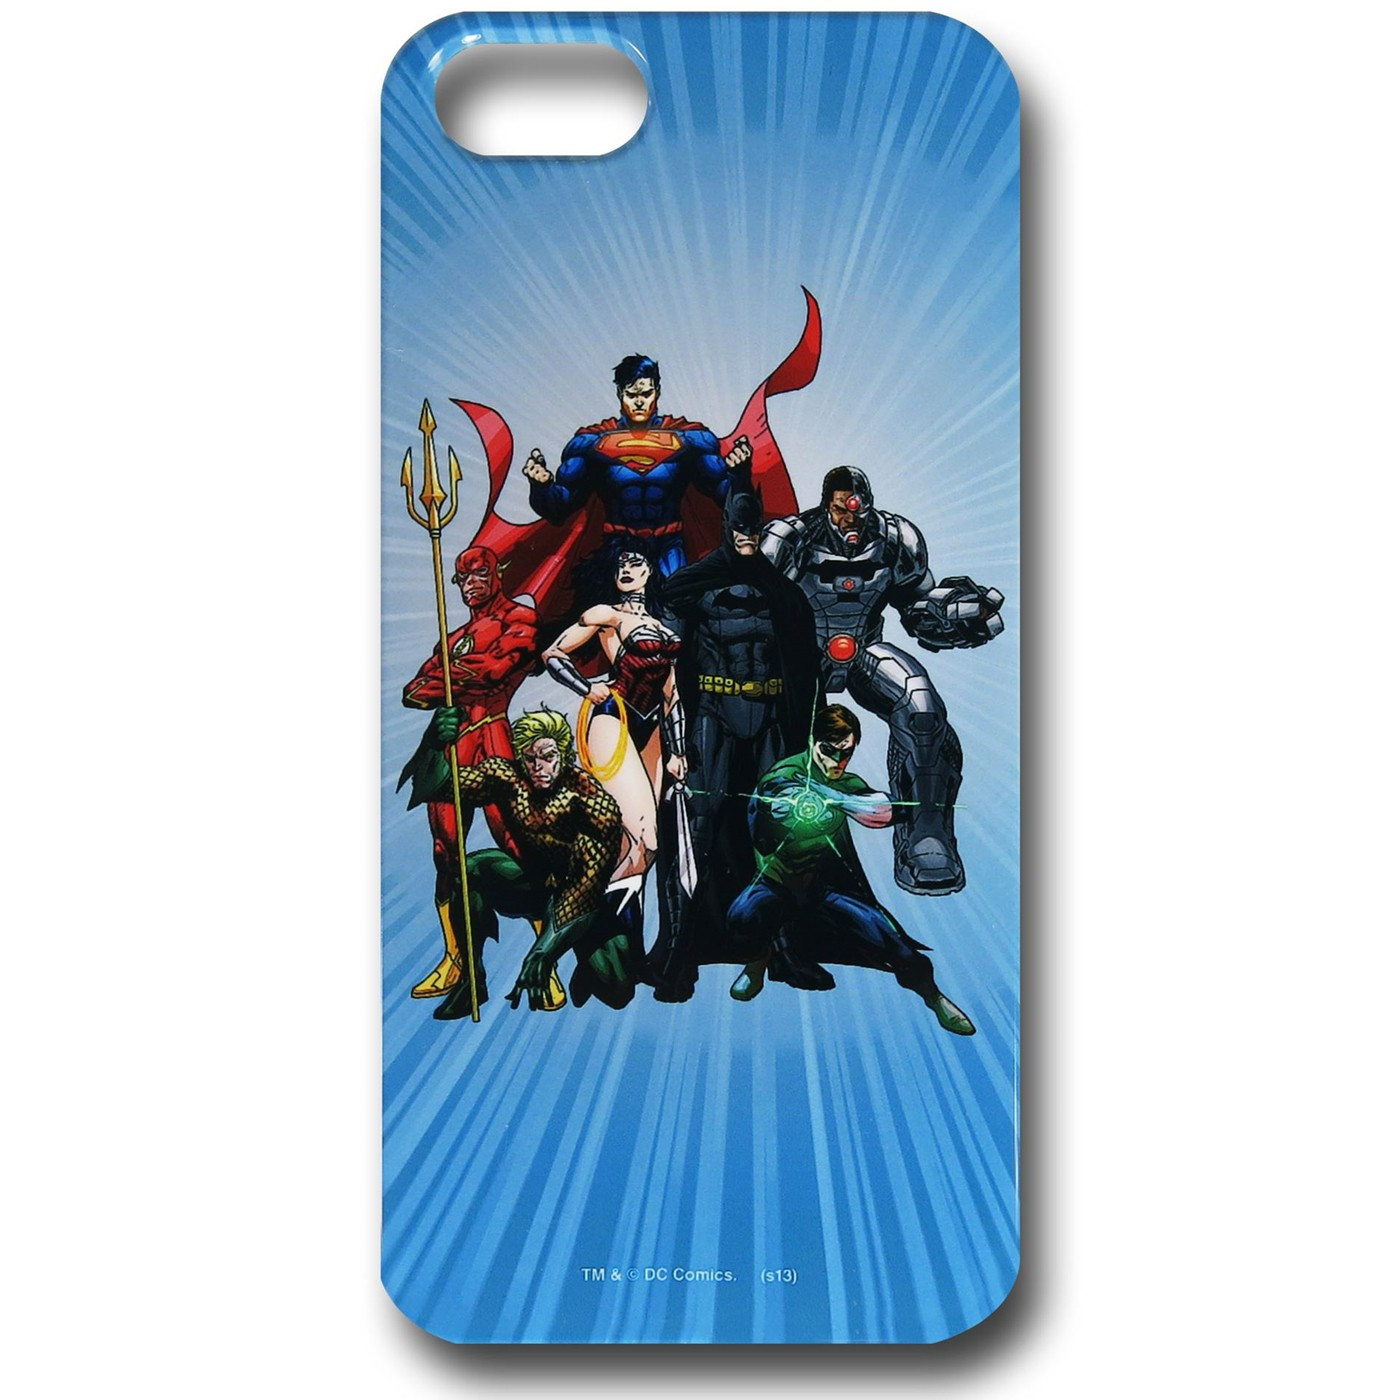 Justice League Group iPhone 5 Snap Case